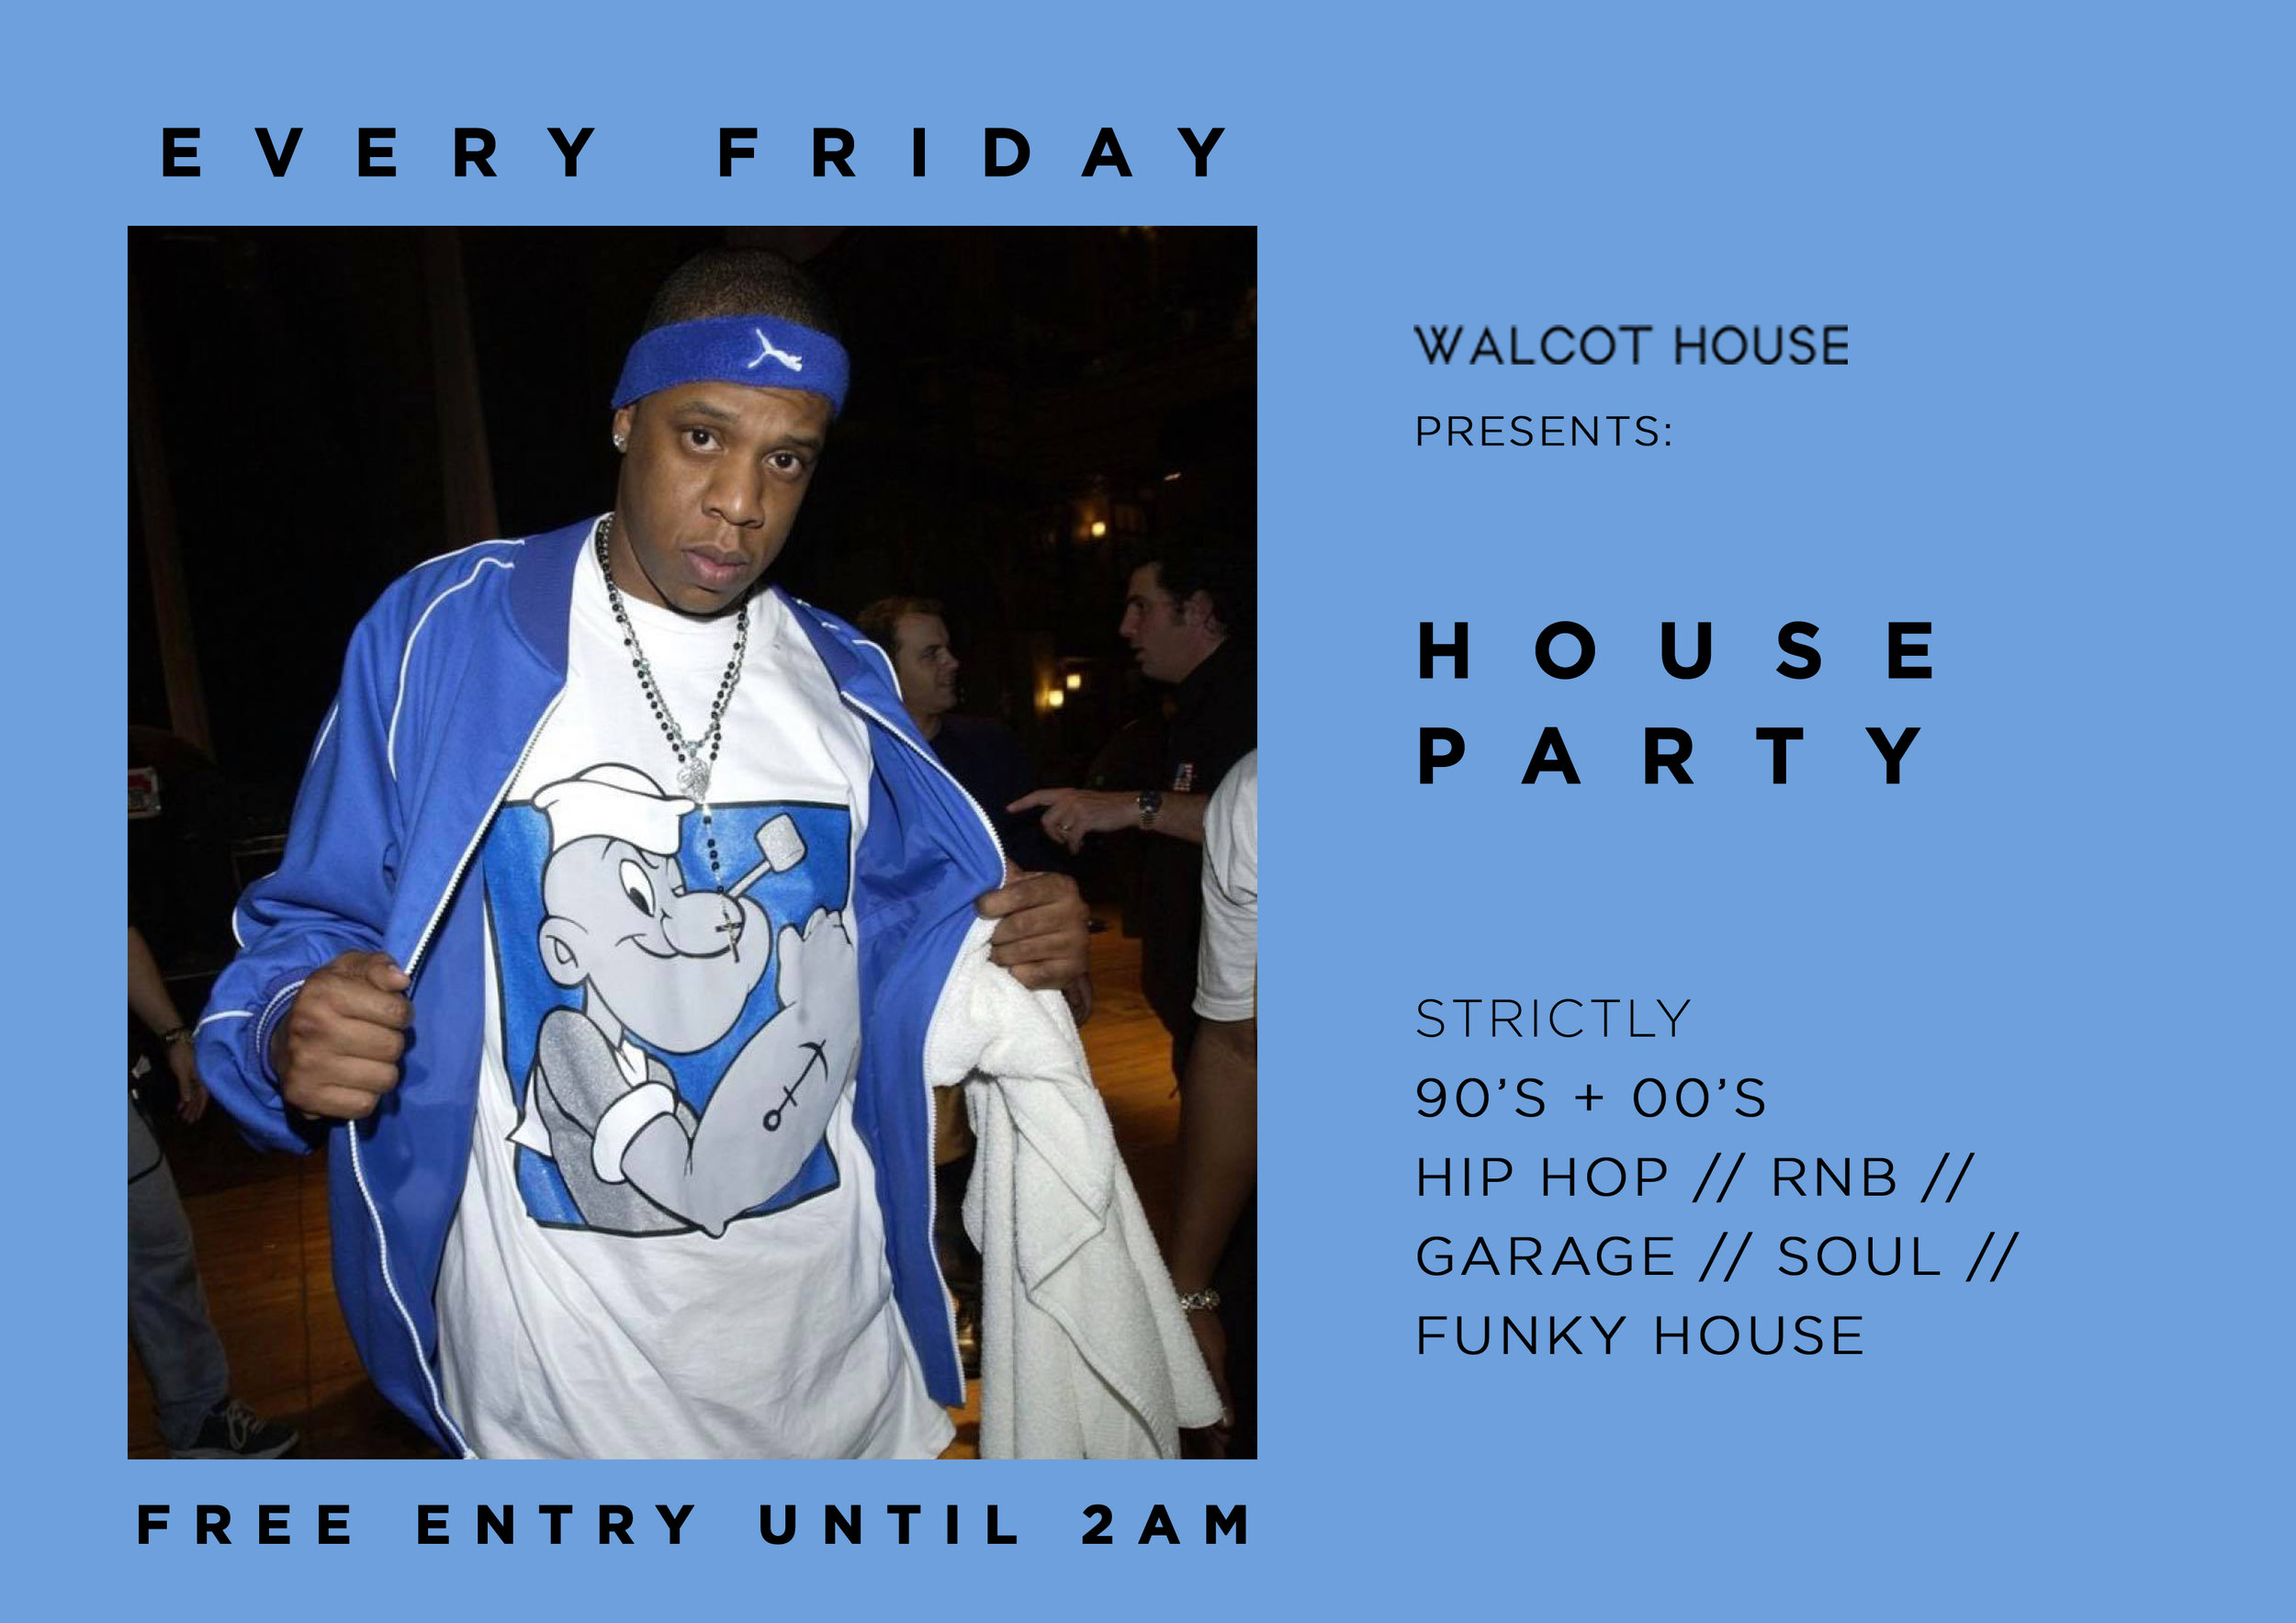 HOUSE PARTY FLYER JAY Z BLUE.jpg